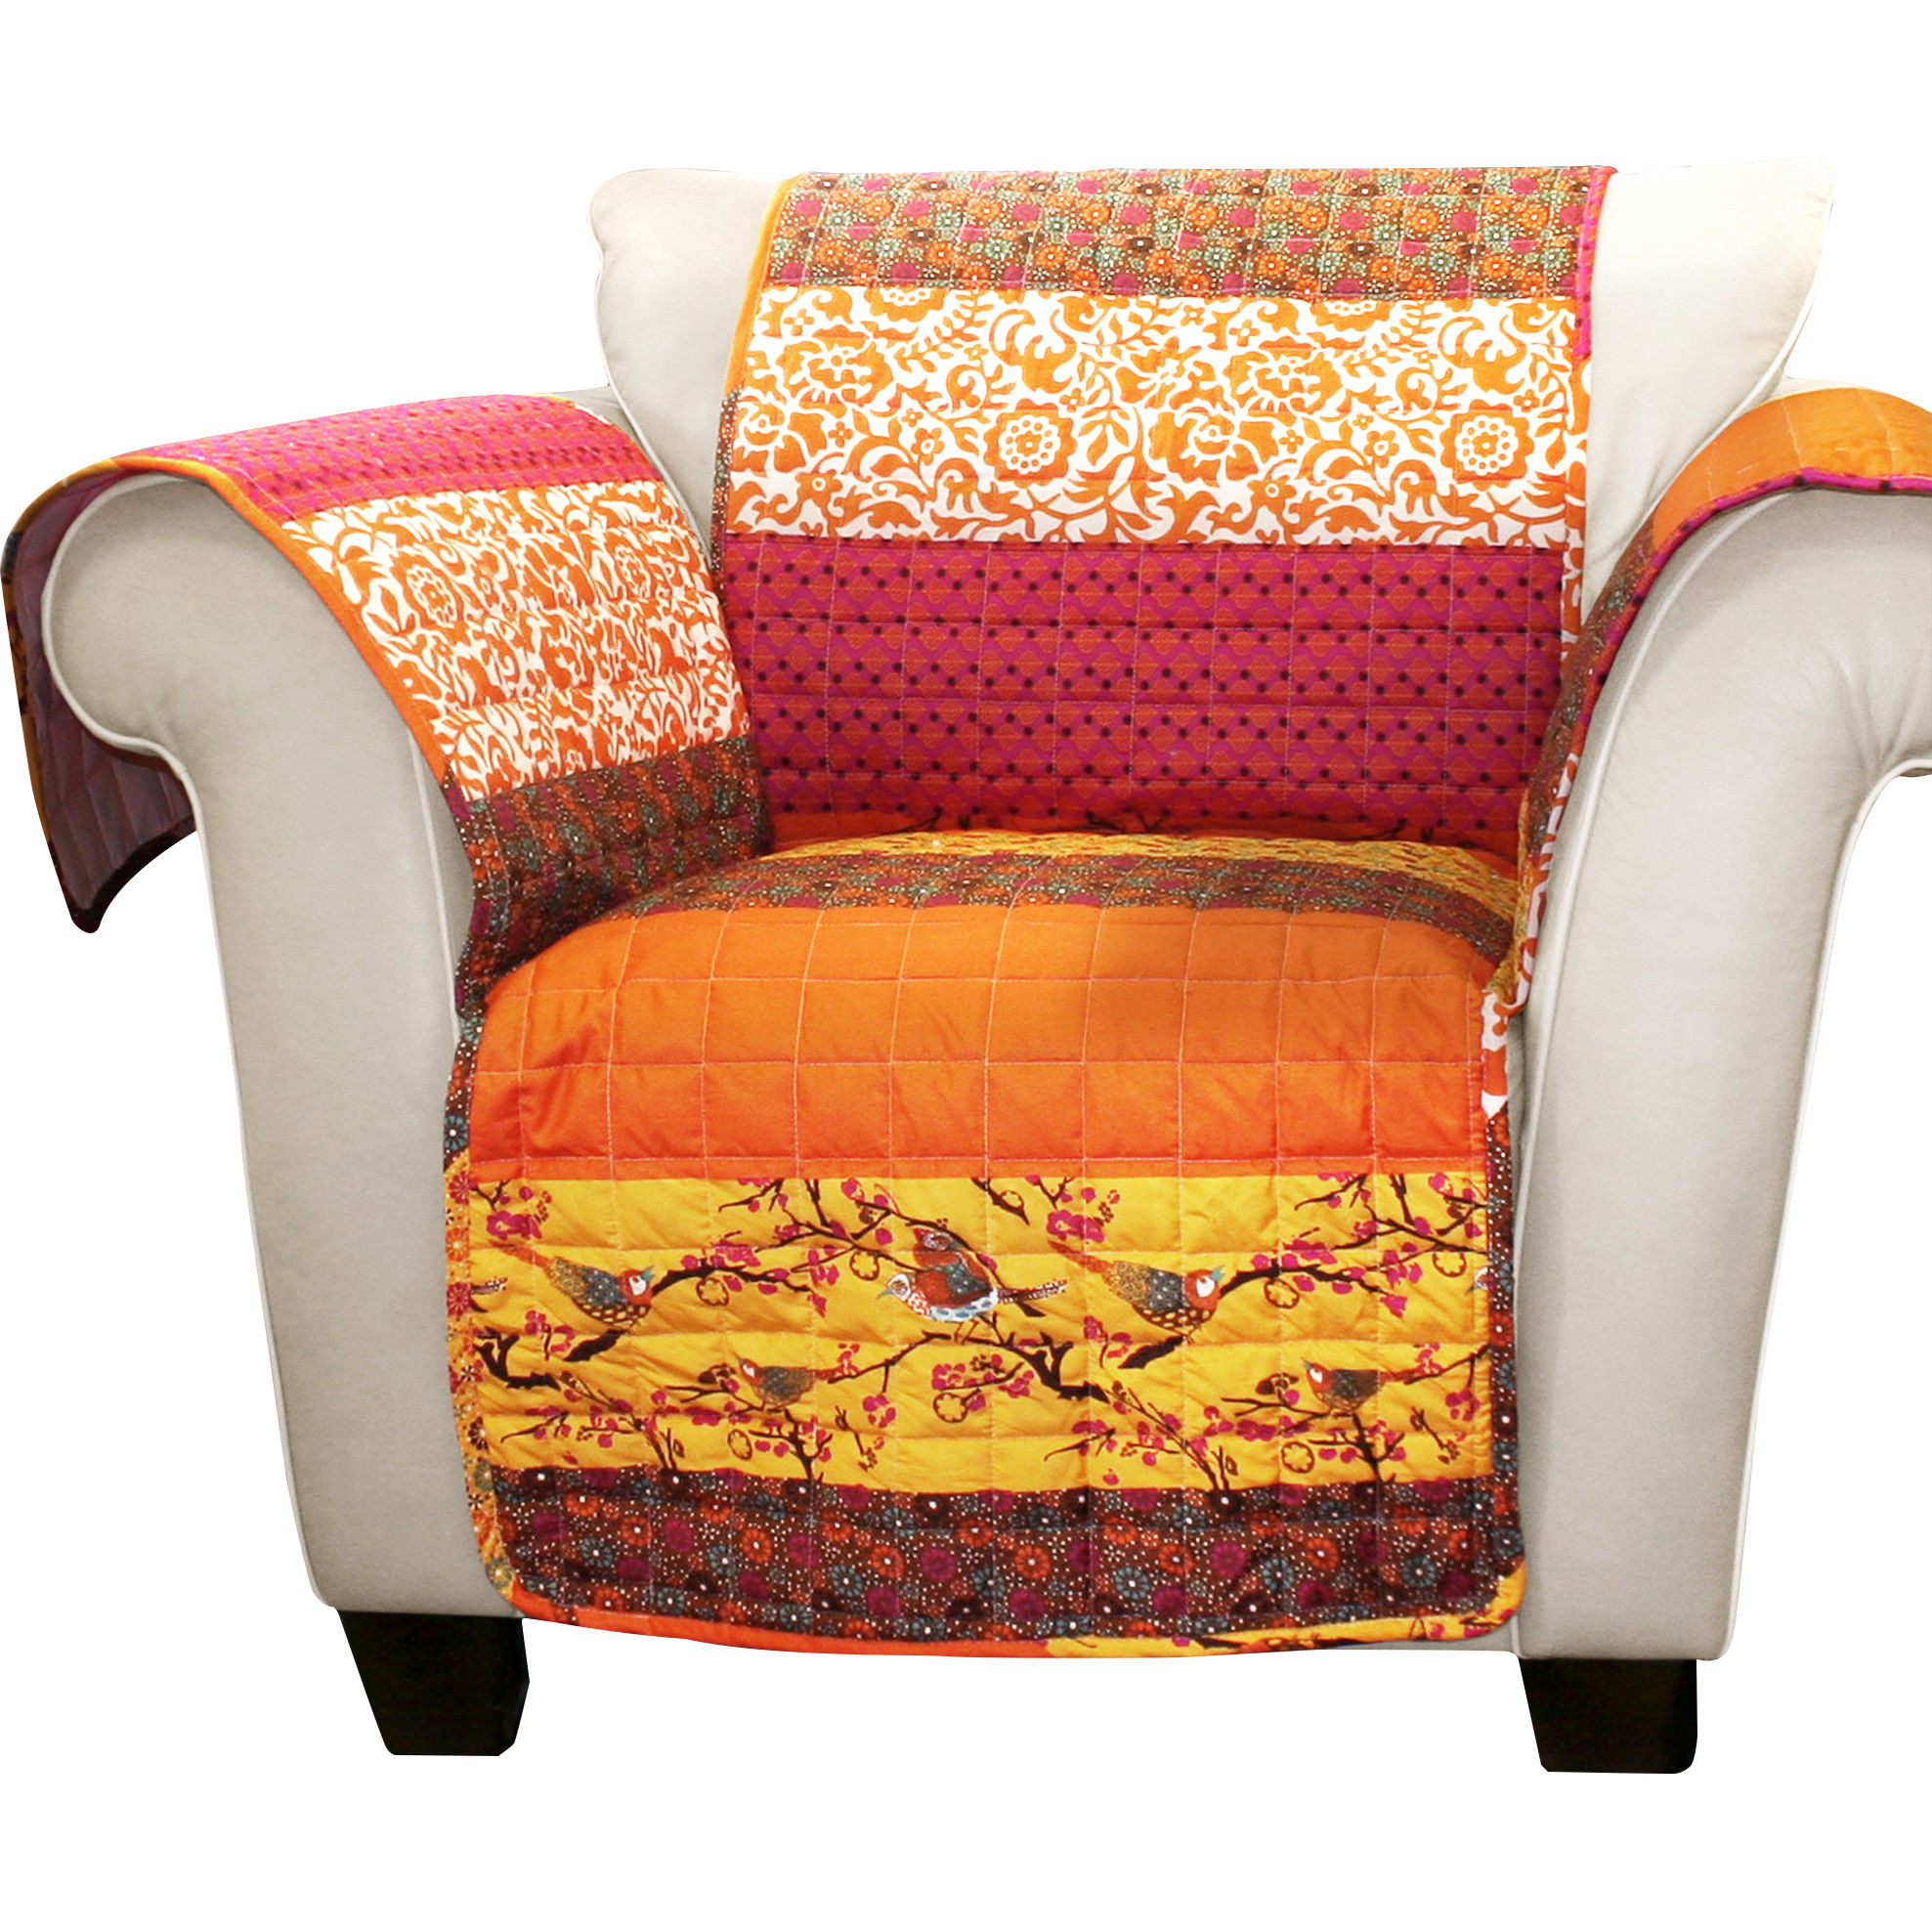 cute sofa chair covers layout-Best Of sofa Chair Covers Décor